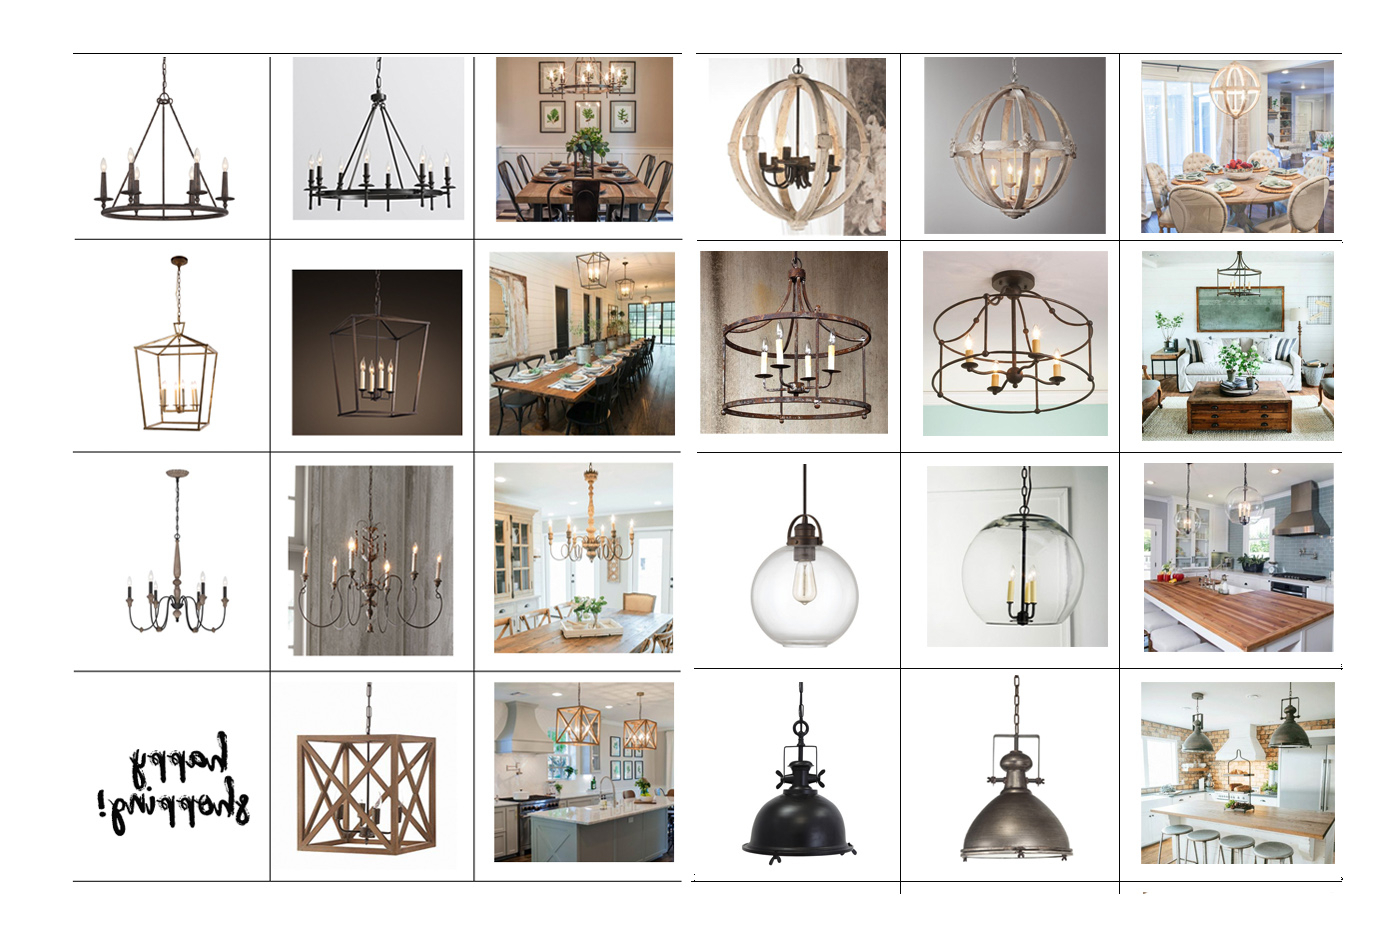 Gaines 5 Light Shaded Chandeliers Intended For Current Favorite Light Fixtures For Fixer Upper Style (View 12 of 25)